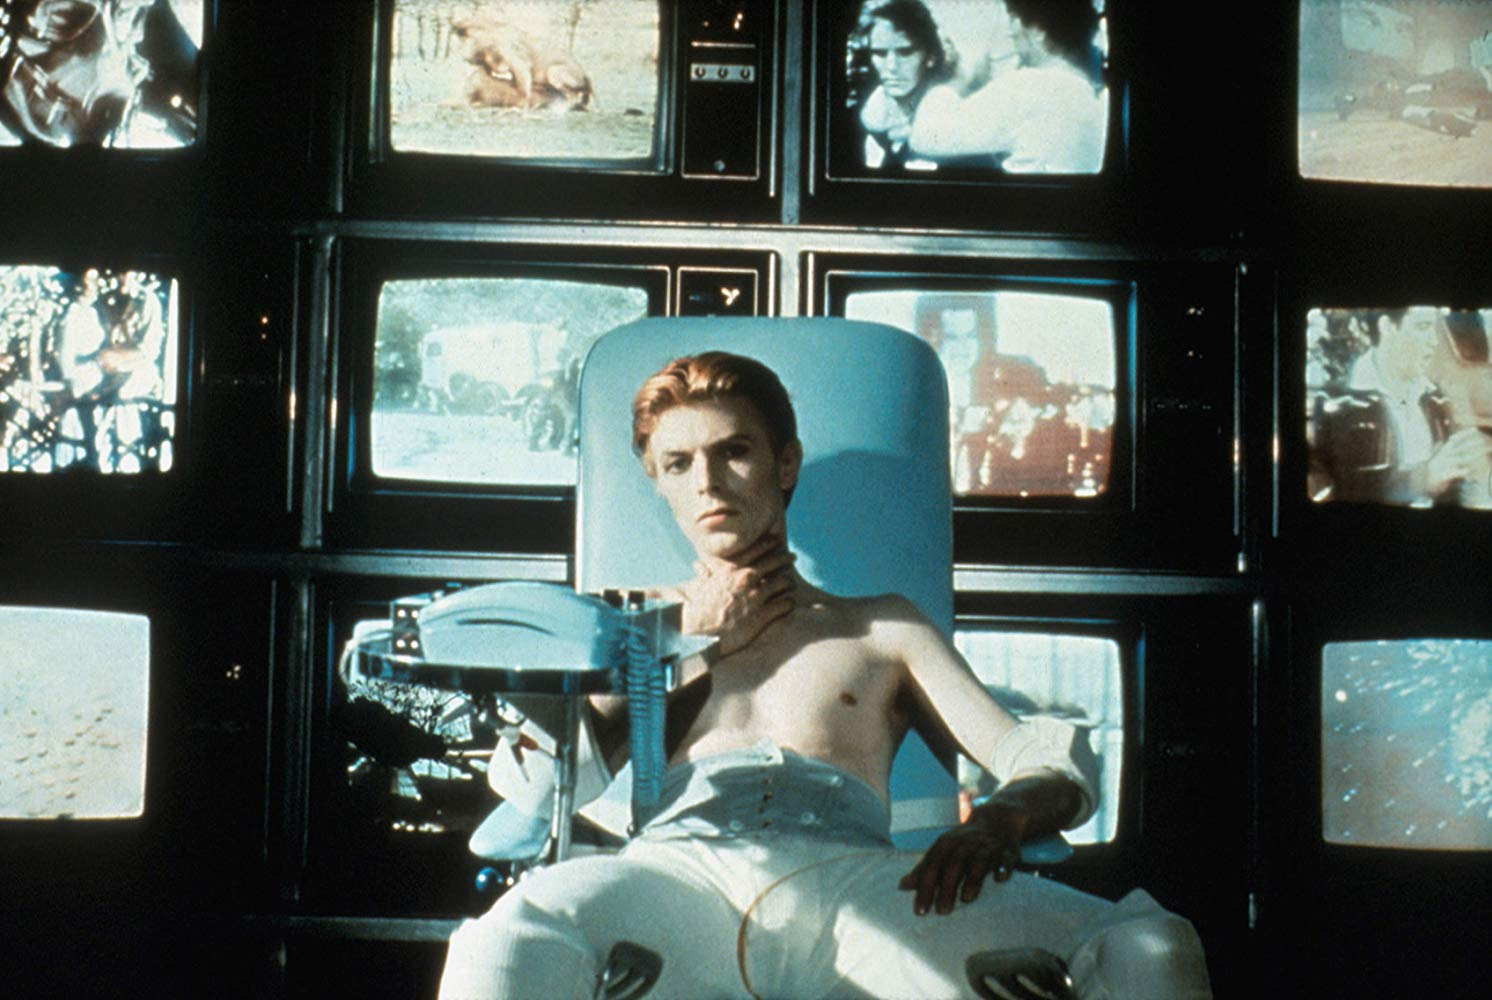 Thomas Jerome Newton (David Bowie) overwhelmed by information overload in The Man Who Fell to Earth (1976)